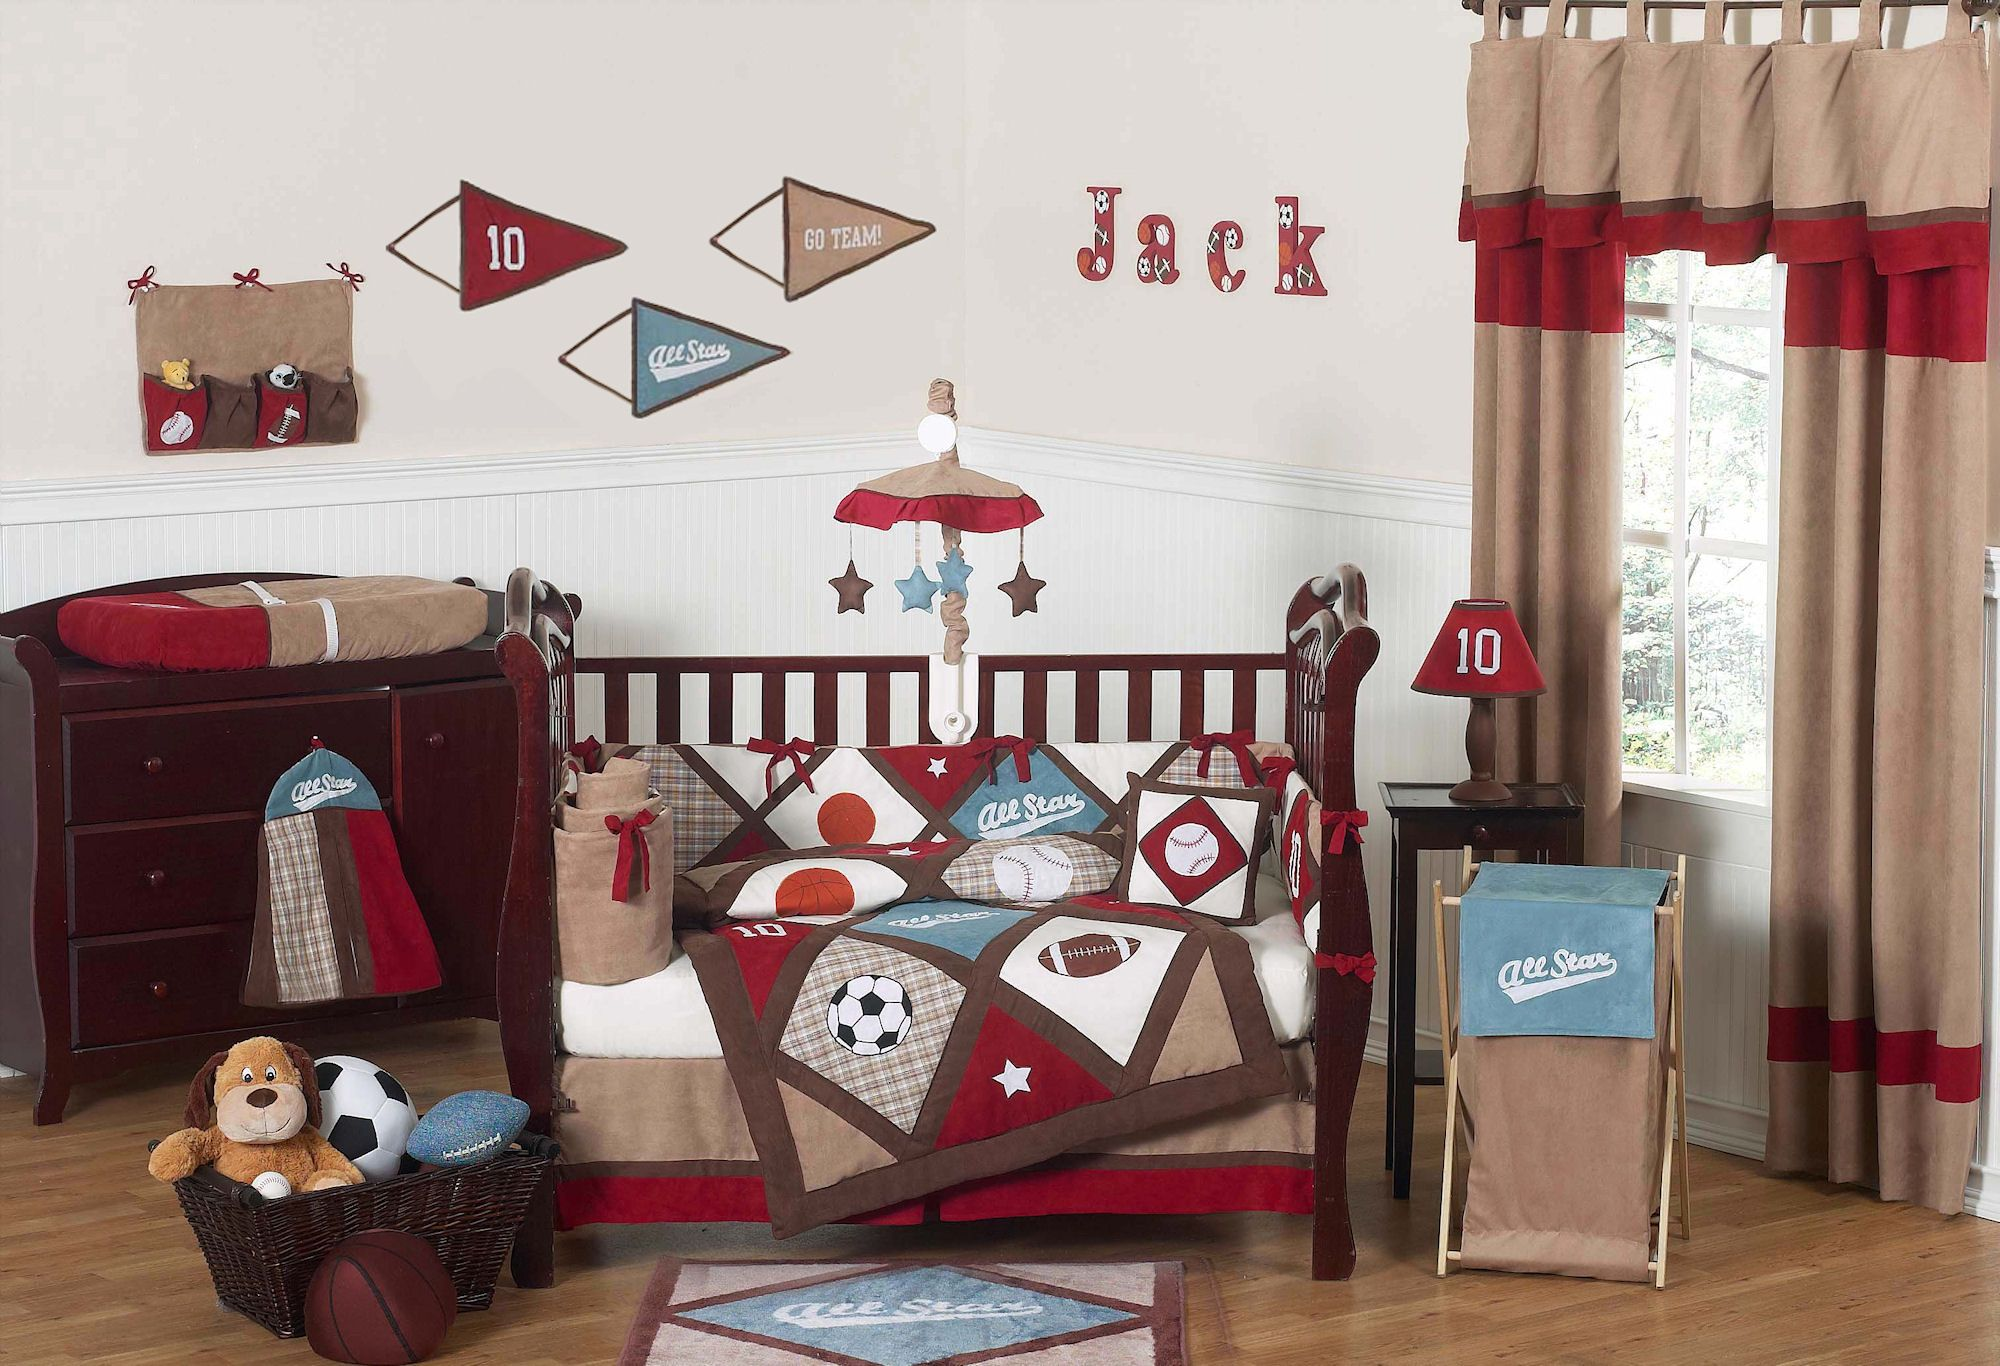 superior Baby Boy Crib Bedding Sports Theme Part - 2: Baby Boy Sports Nursery | All Star Sports Theme Baby Boy Crib Bedding Set -  9pc Nursery .